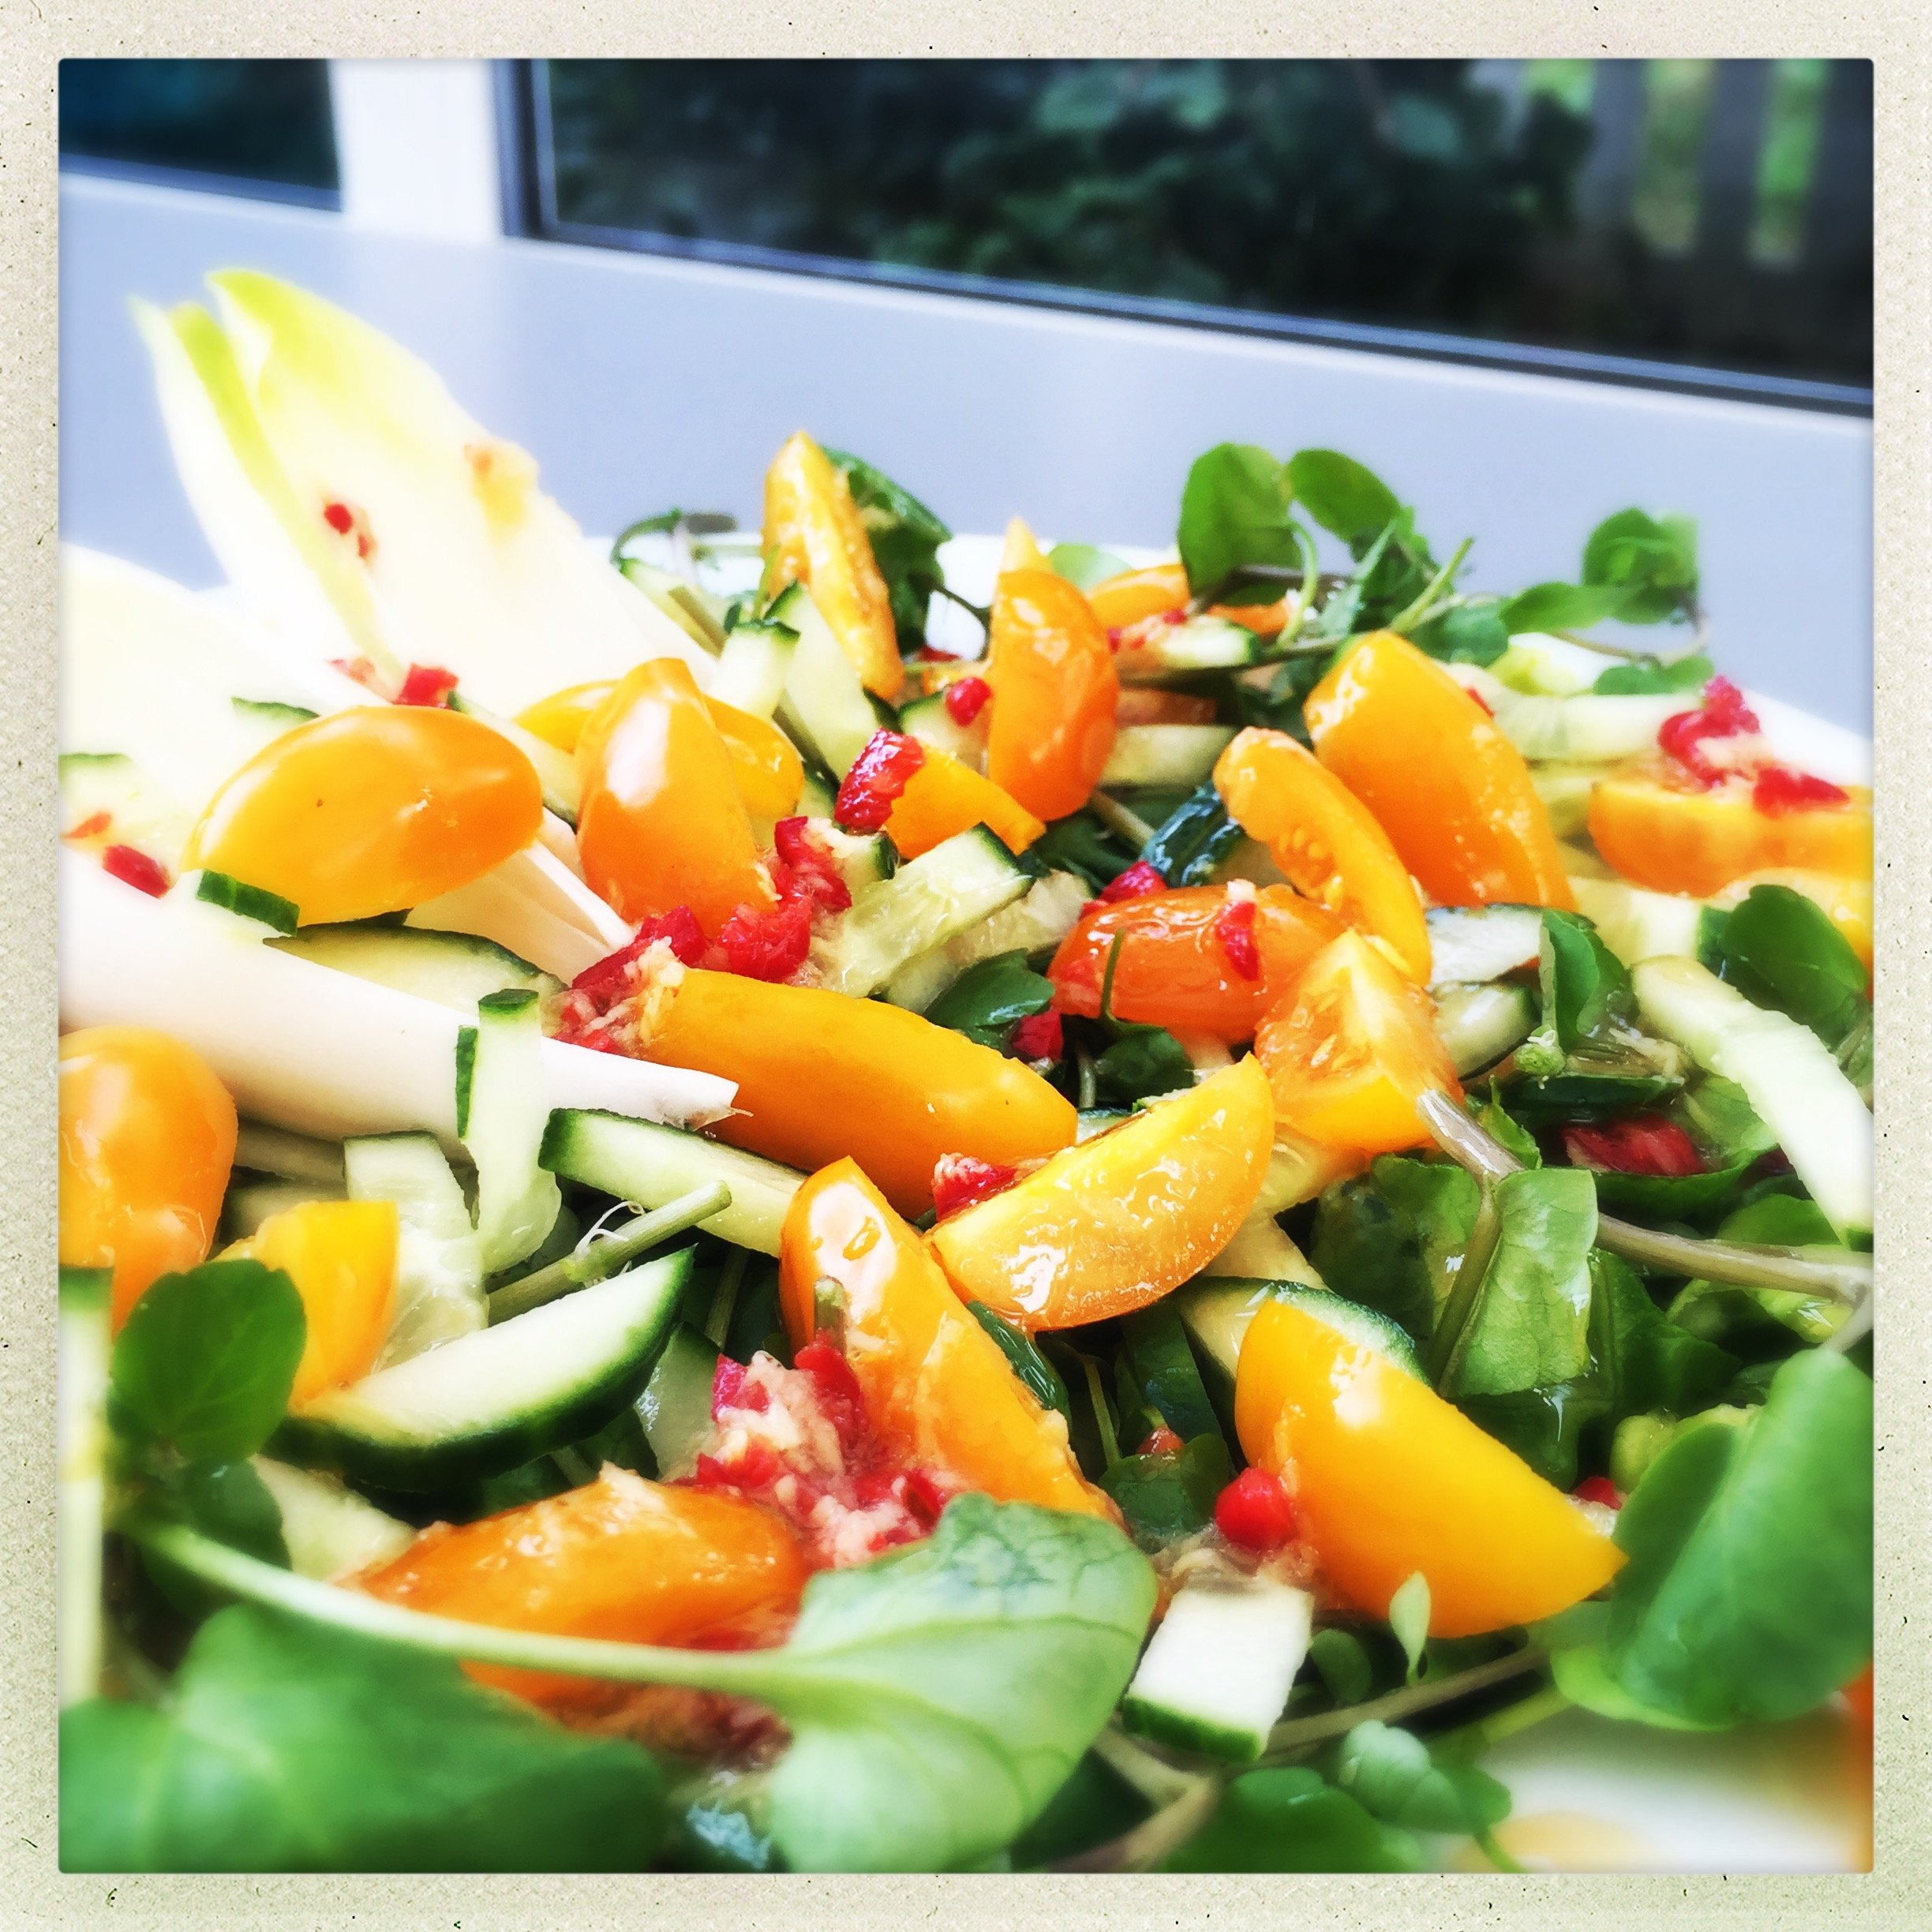 Watercress and chicory salad with fiery dressing